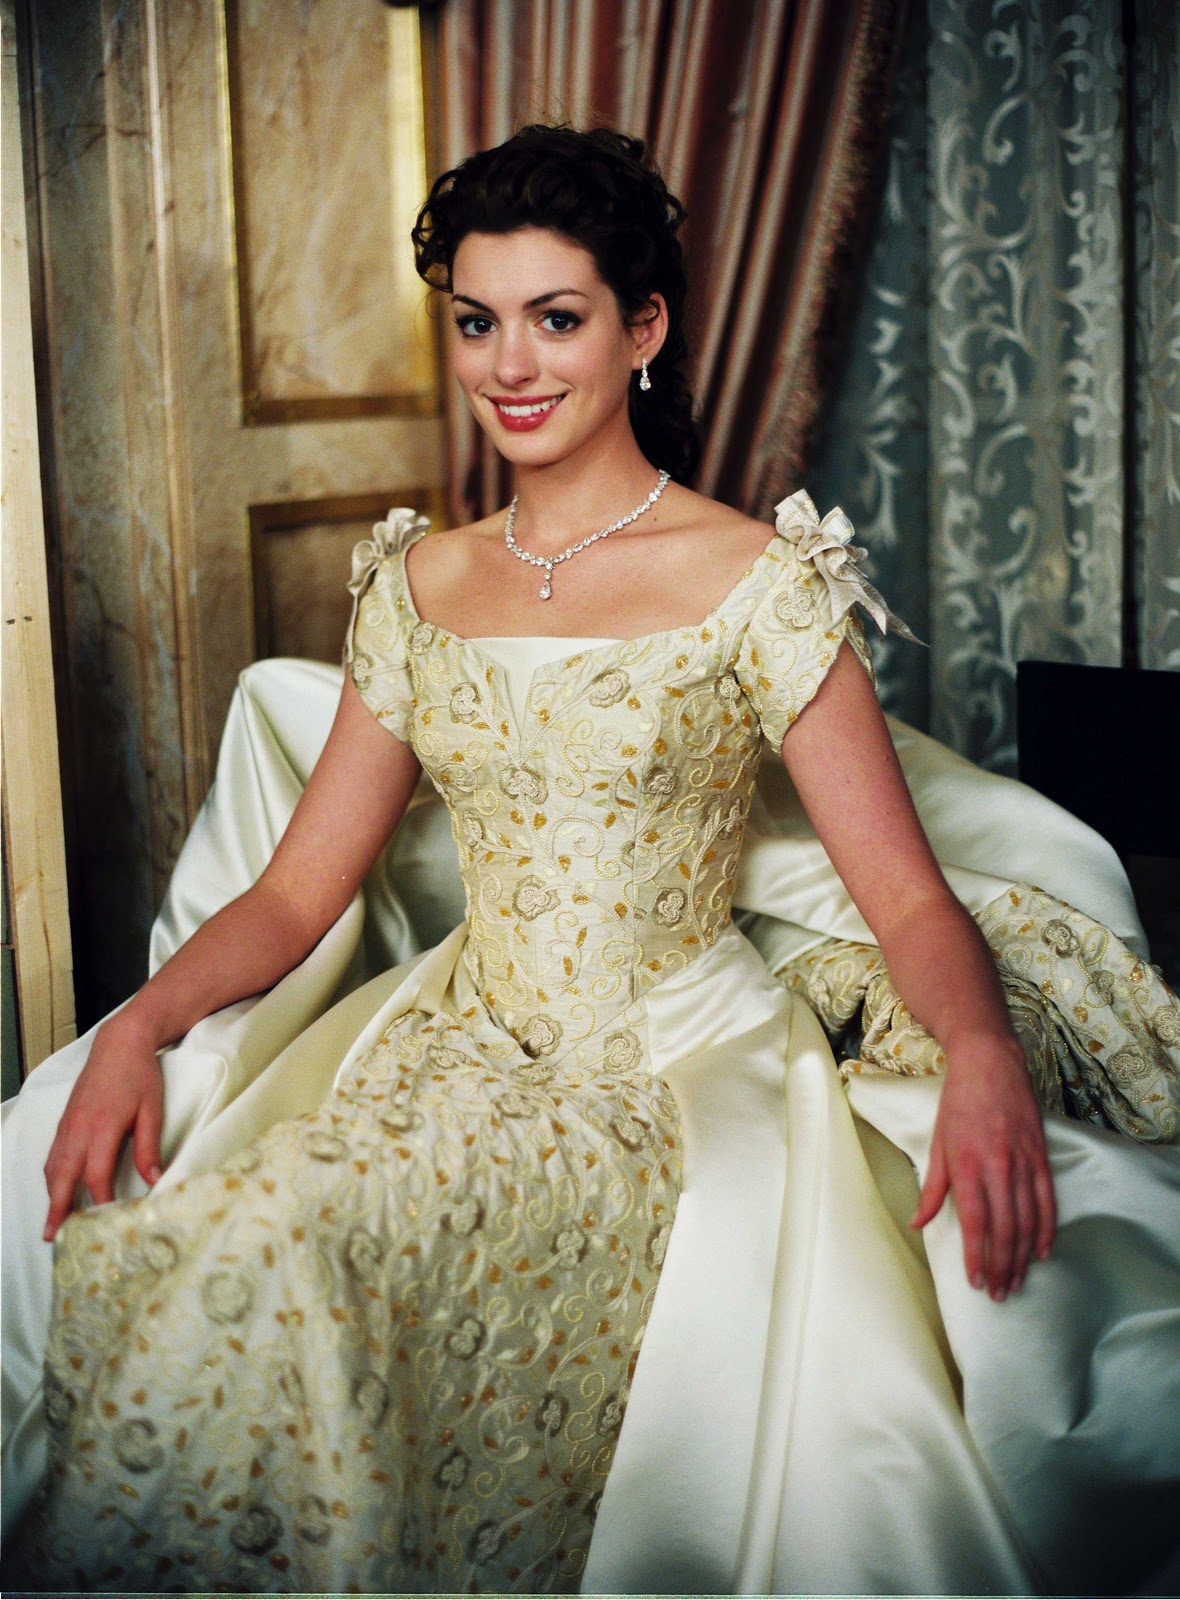 Fascinated by the image of the enormously busty goddess Anne Hathaway who transforms into a princess: The beauty of a Hollywood treasure, a royal aura that is hard to match - Photo 5.